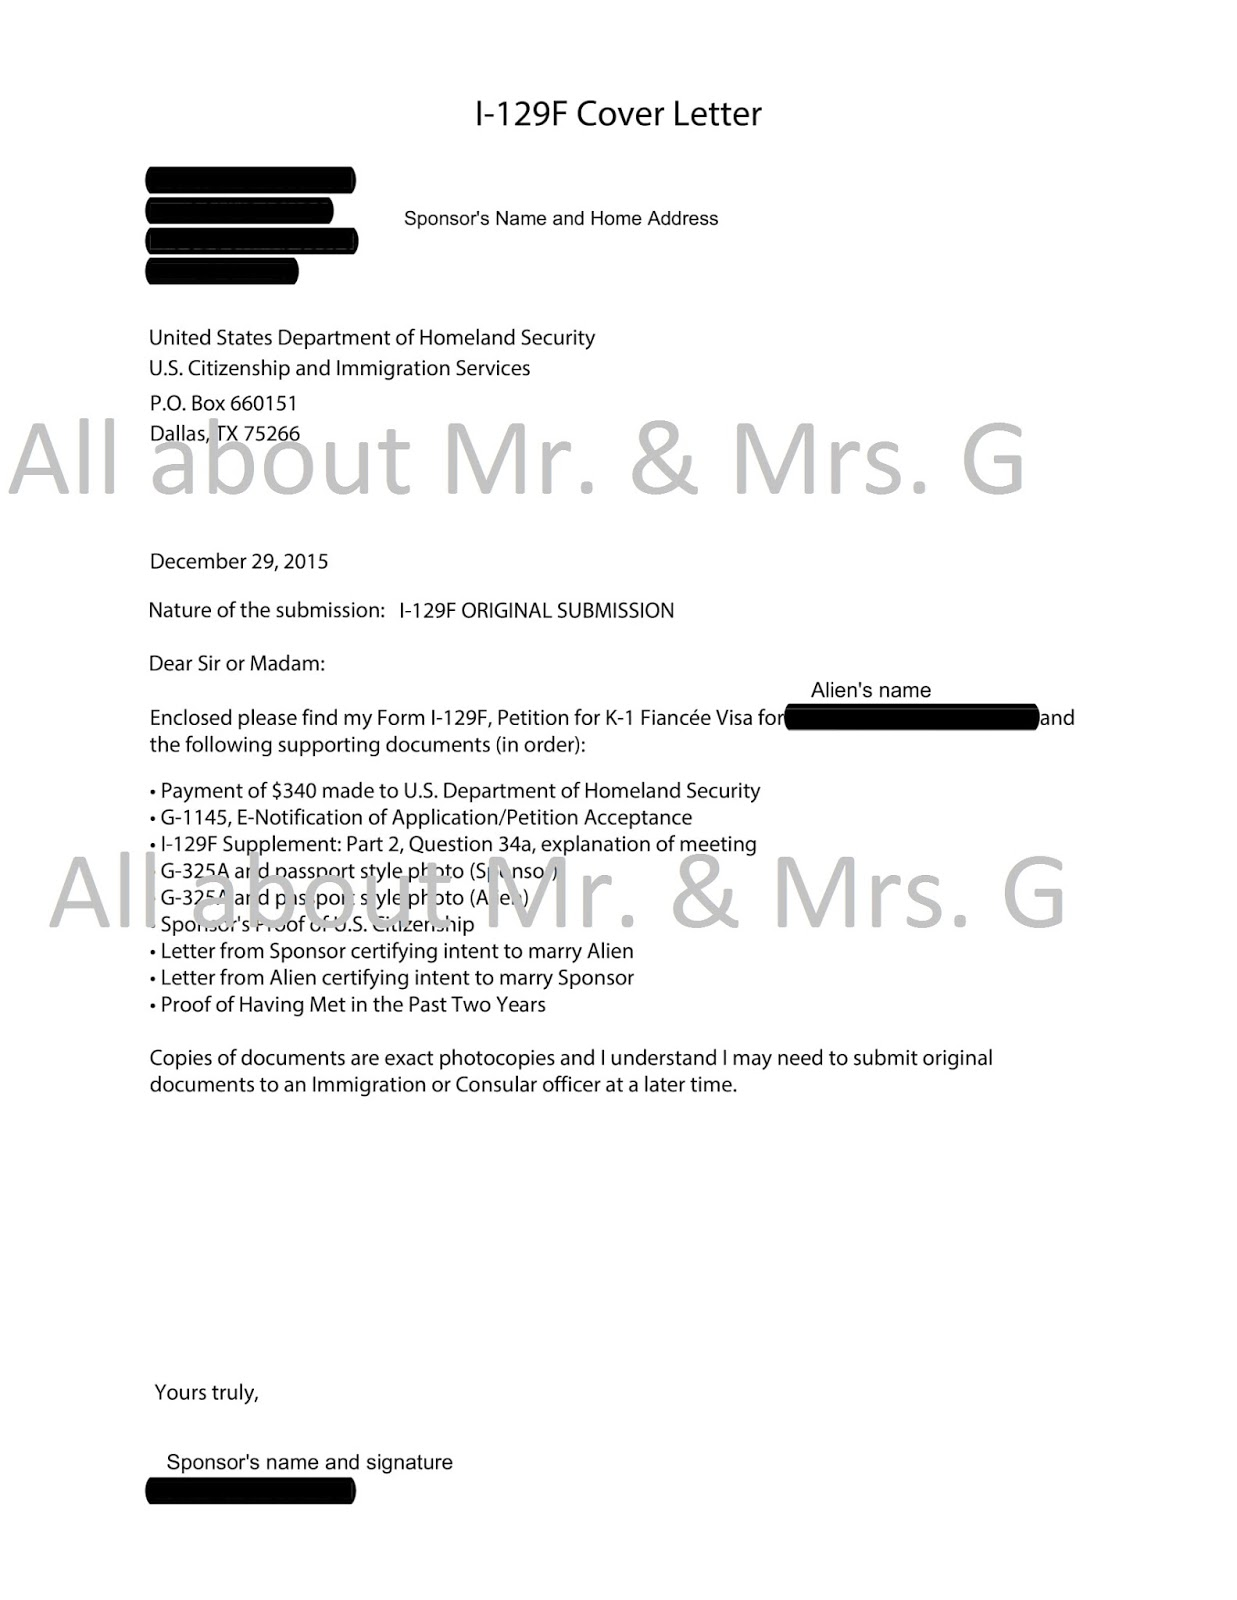 All about mr and mrs g k 1 fiance visa timeline sample cover letter and letter of intent spiritdancerdesigns Image collections